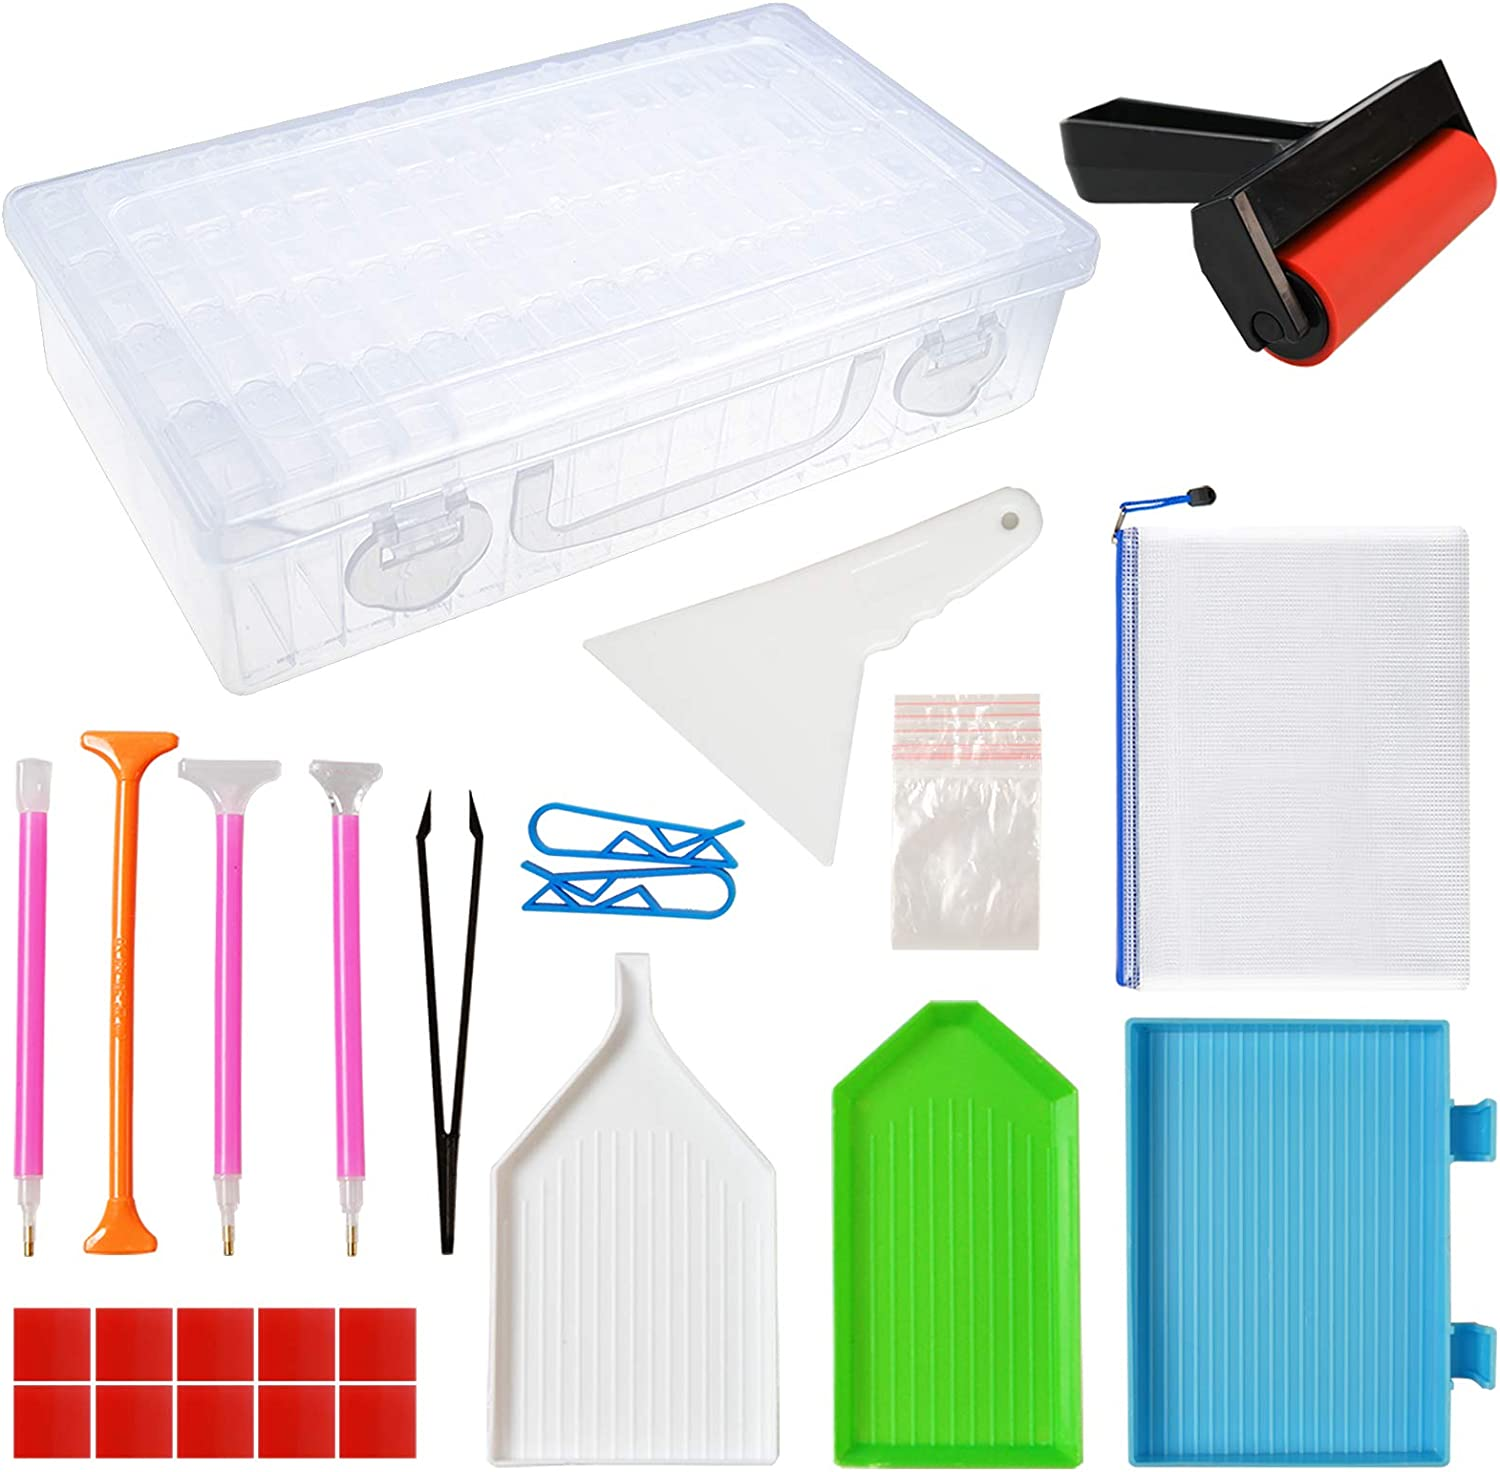 Outuxed 56Pcs 5D Diamond Painting Kit Accessories Tools for Adults with Diamond Painting Roller and 64 Grids Diamond Storage Box